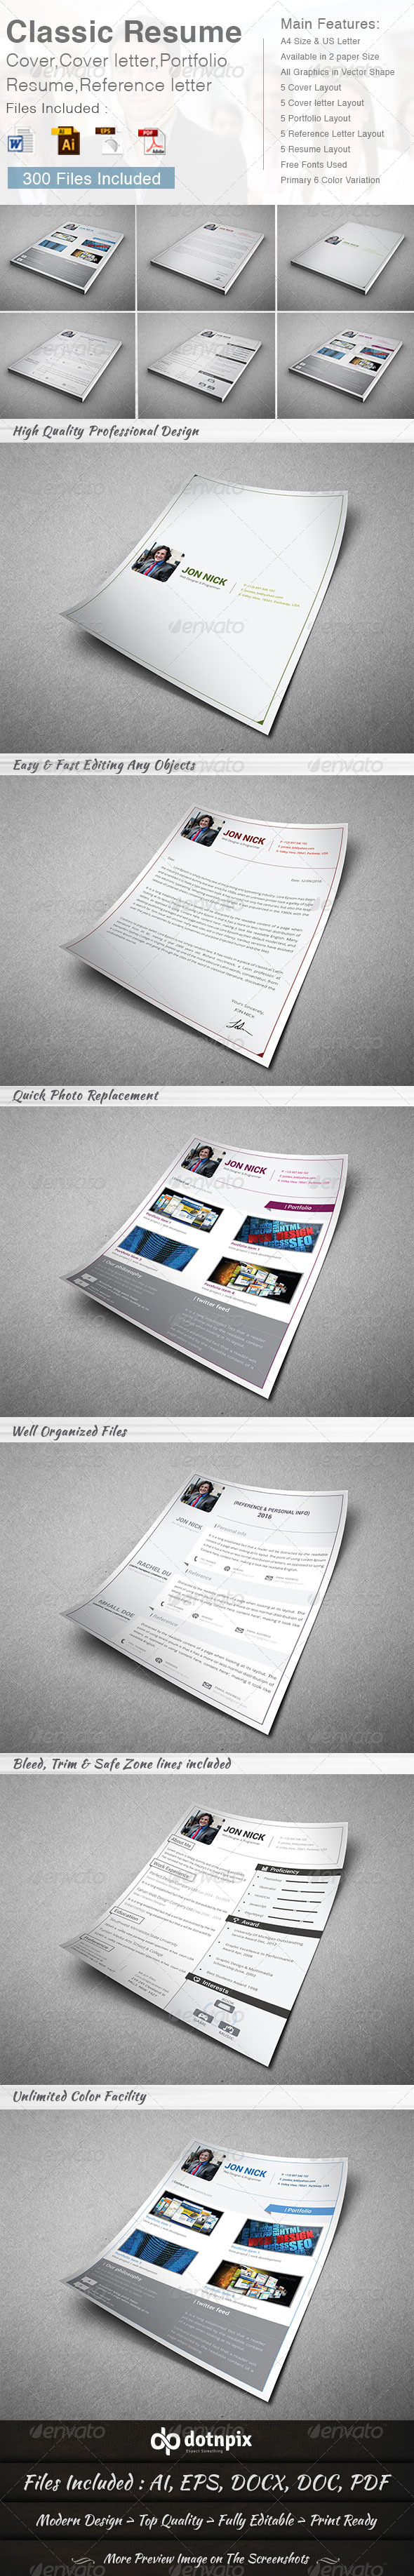 GraphicRiver Classic Resume 5 in 1 8643120